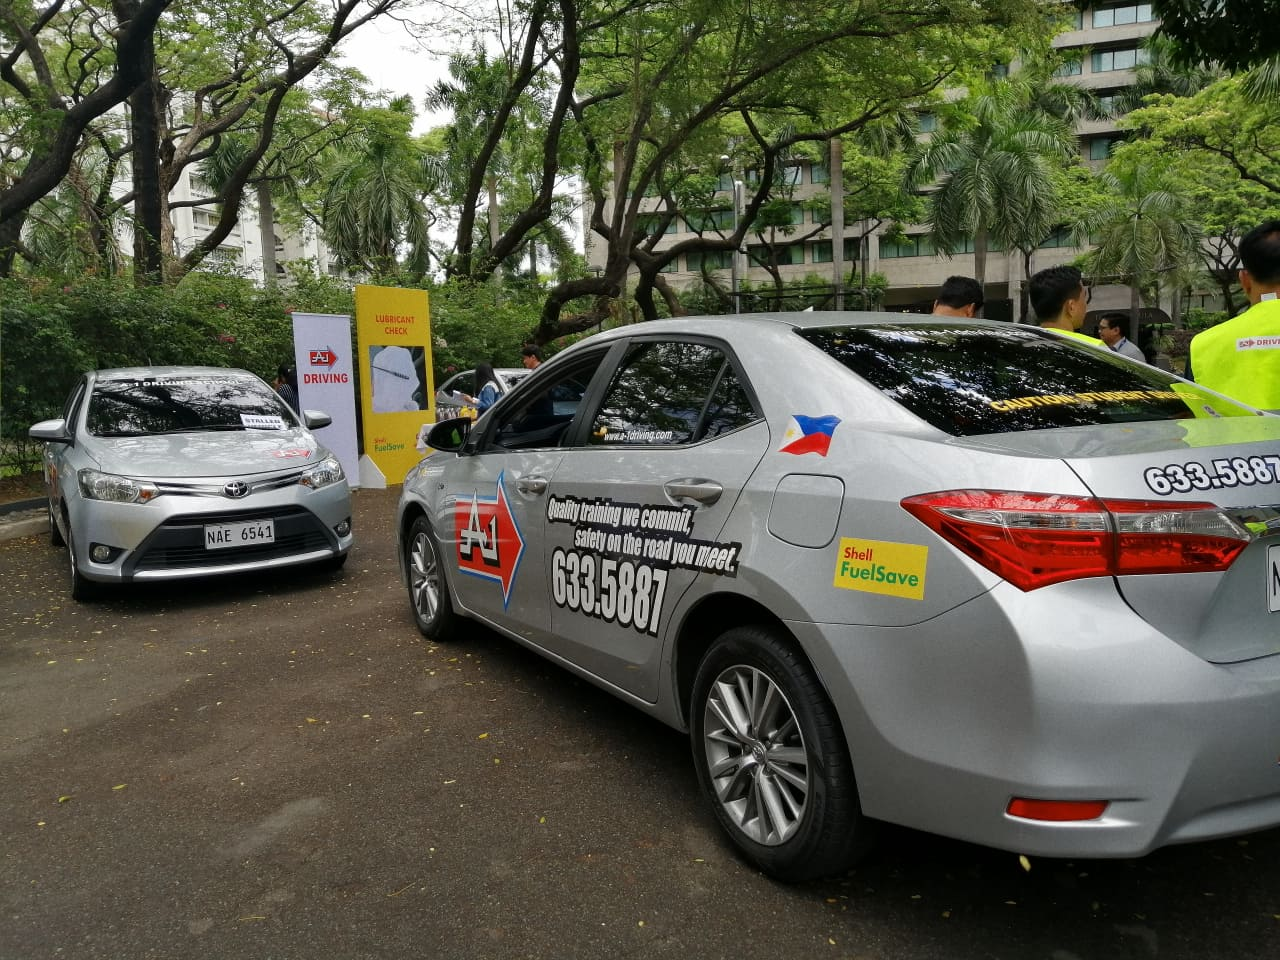 Shell Pilipinas partnered with A1 Driving School